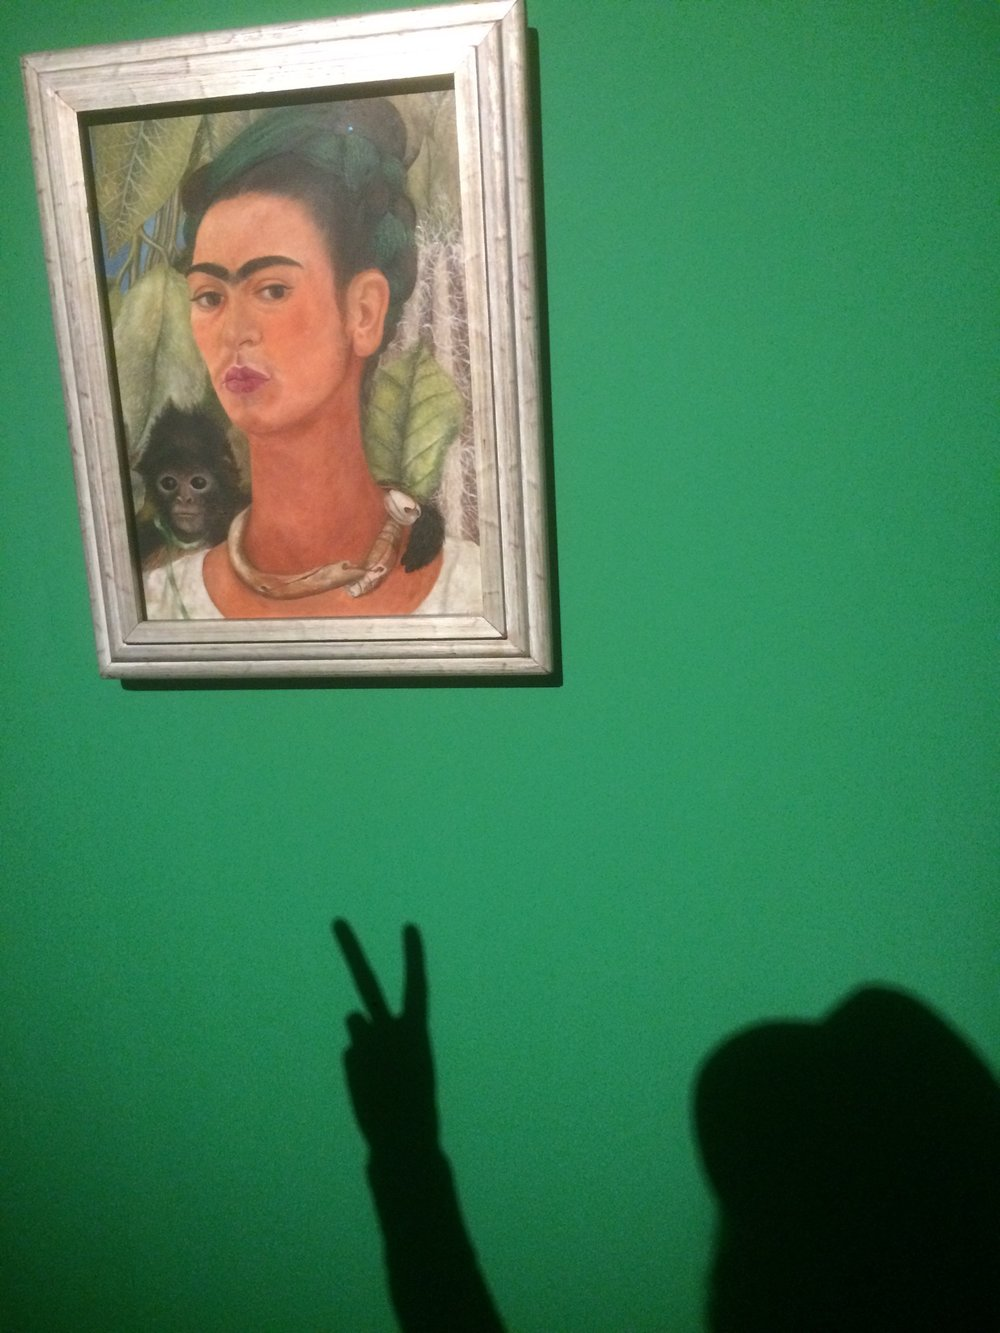 frida_kahlo_peace_milano_march_2018.JPG